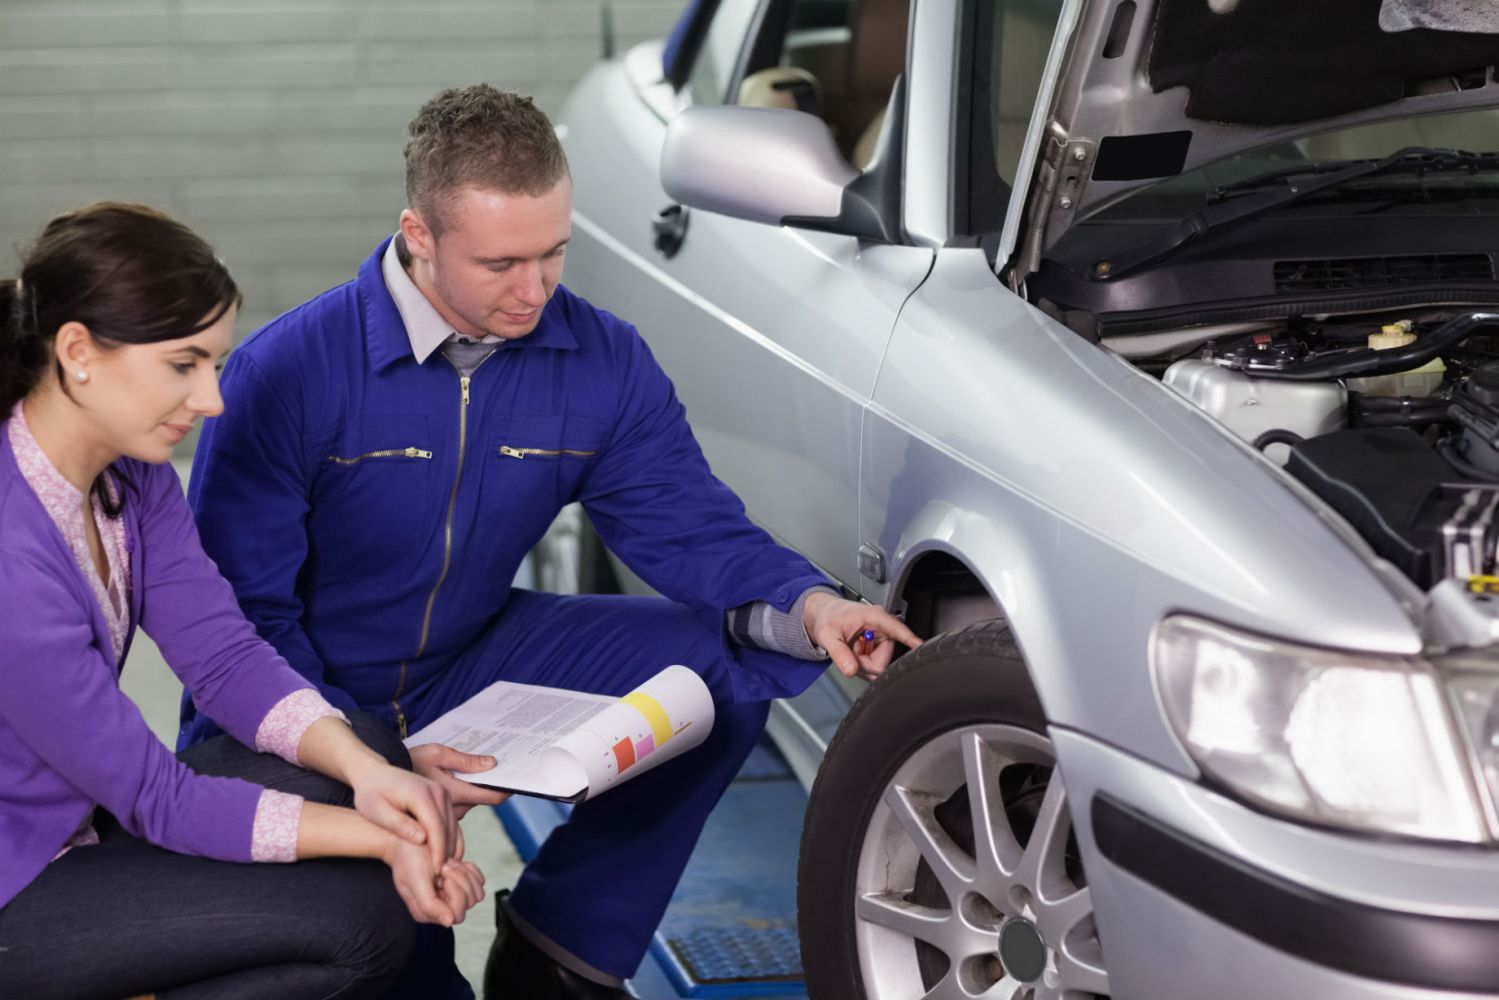 A mechanic explaining wheel alignment issues with a customer in Wentzville, MO